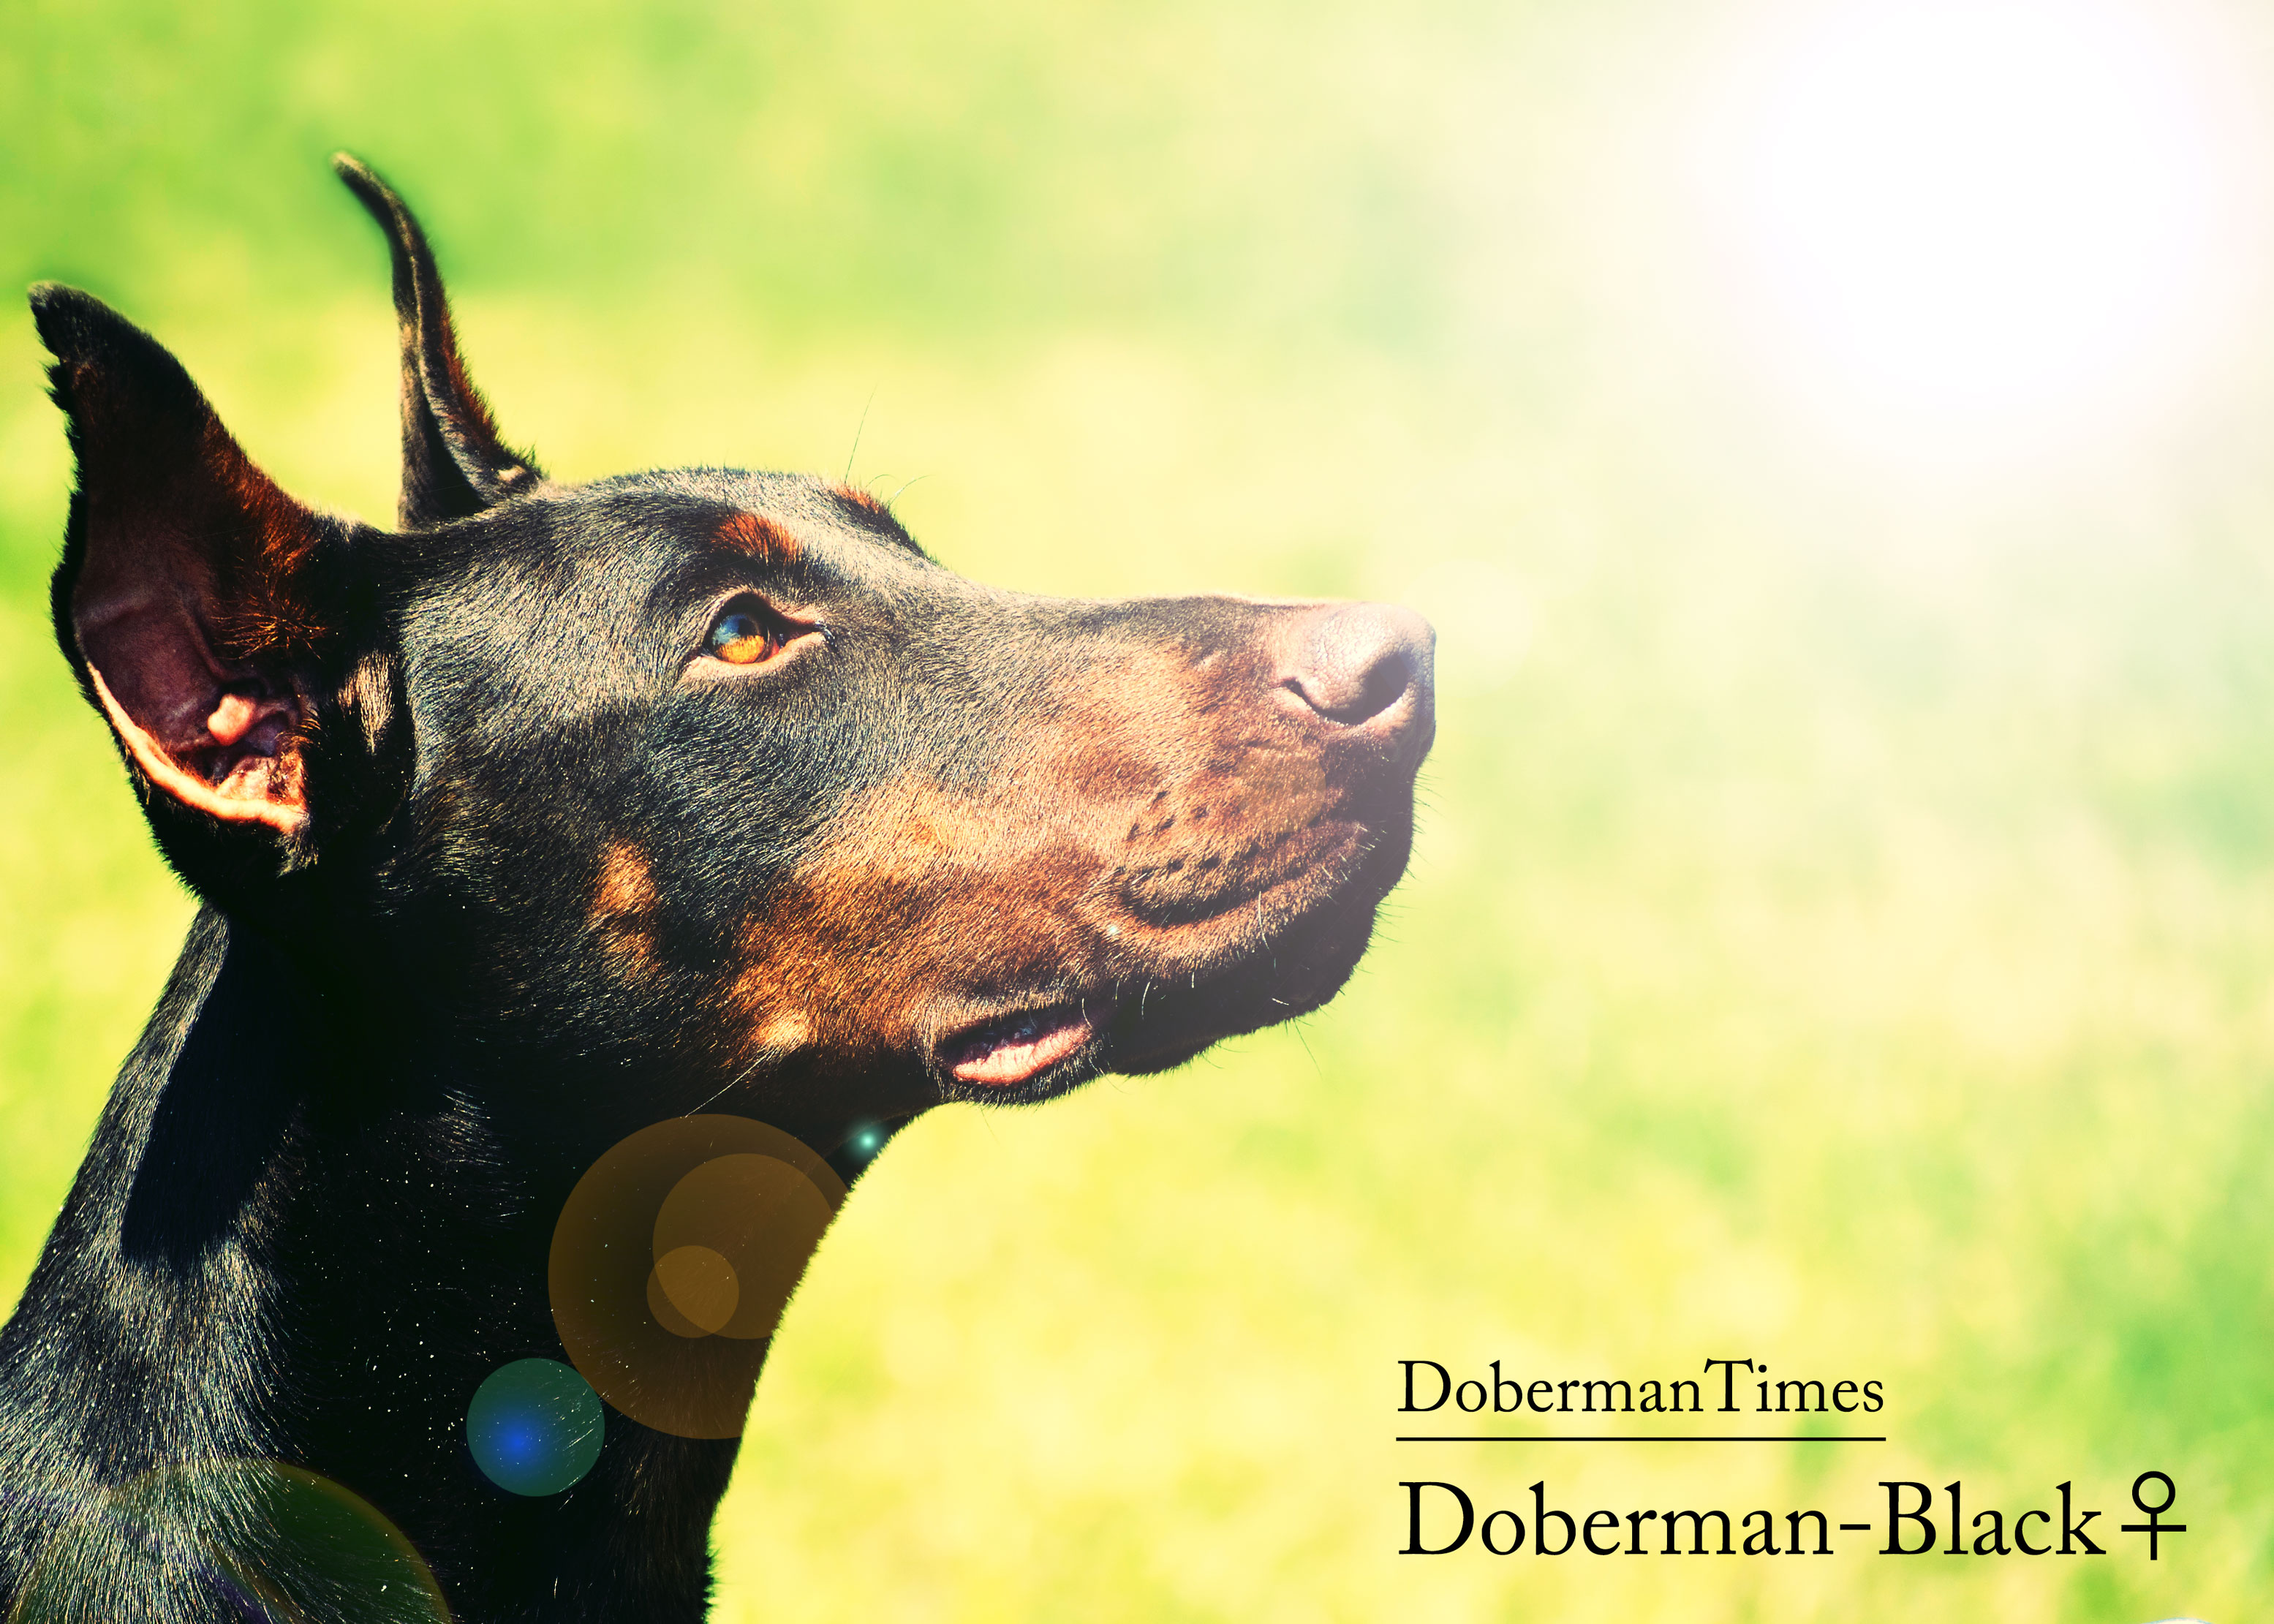 Doberman-Black♀